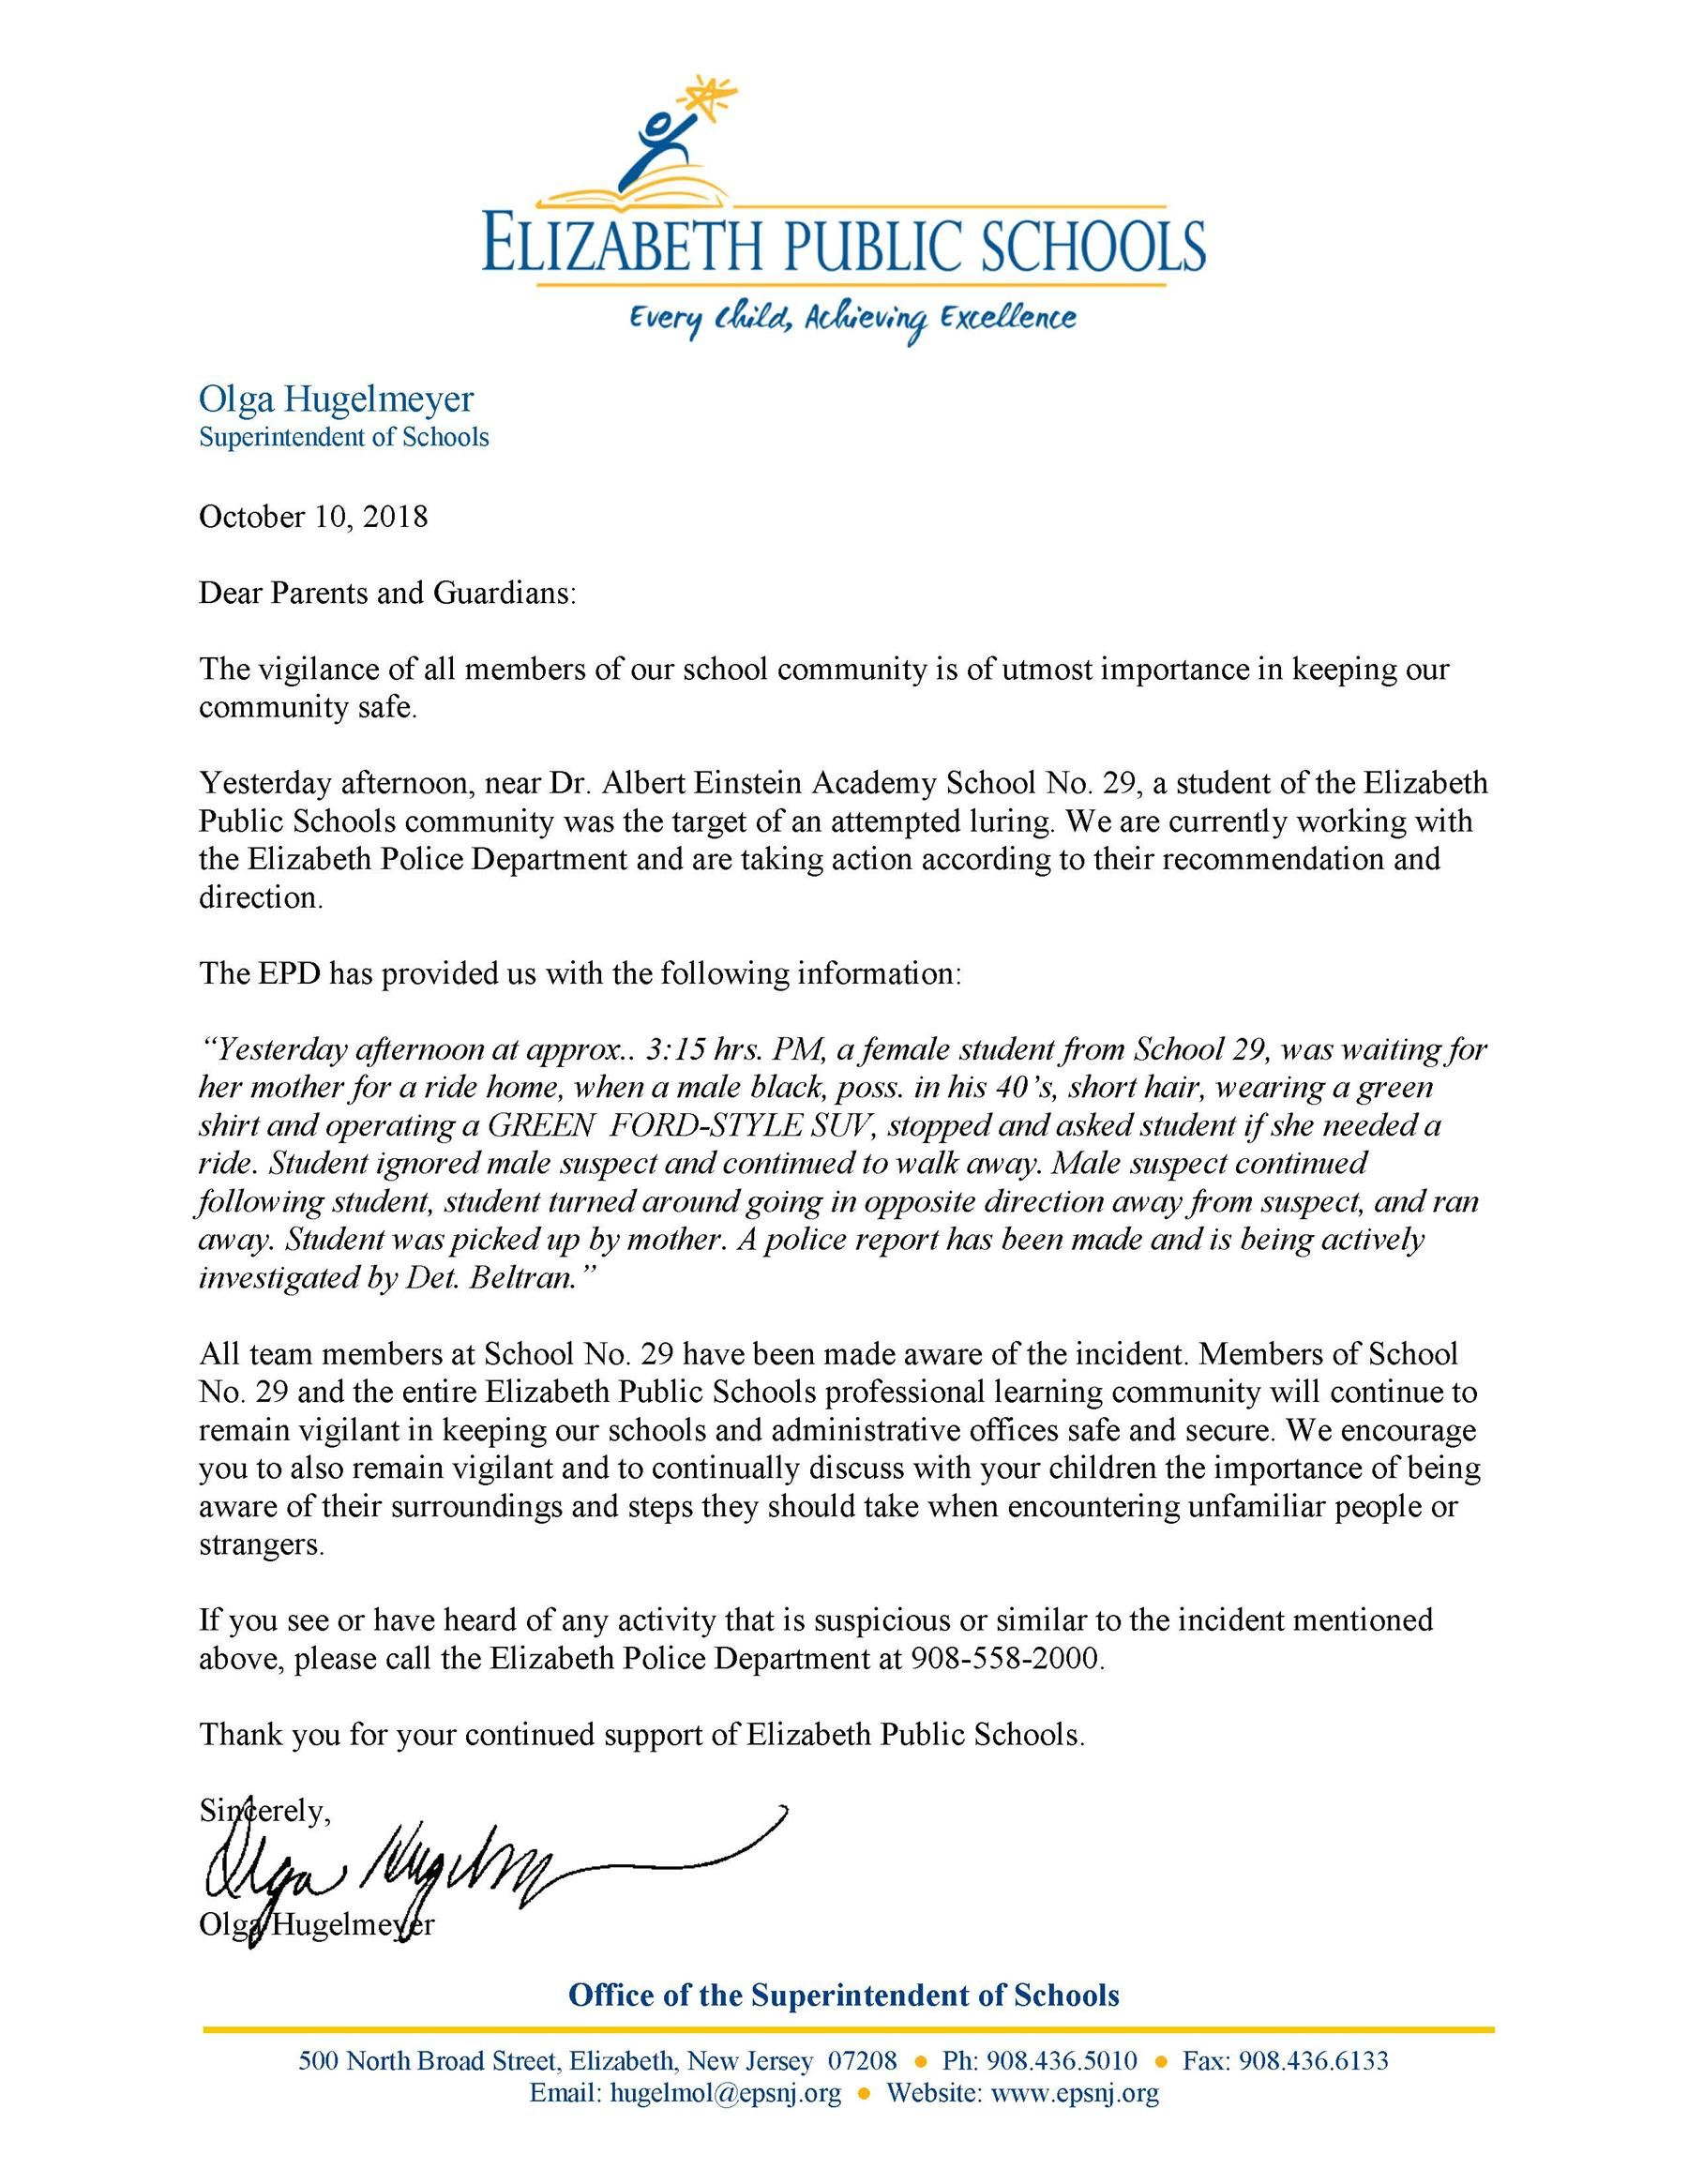 Letter to EPS parents about incident of attempted luring in Elizabeth near School 29